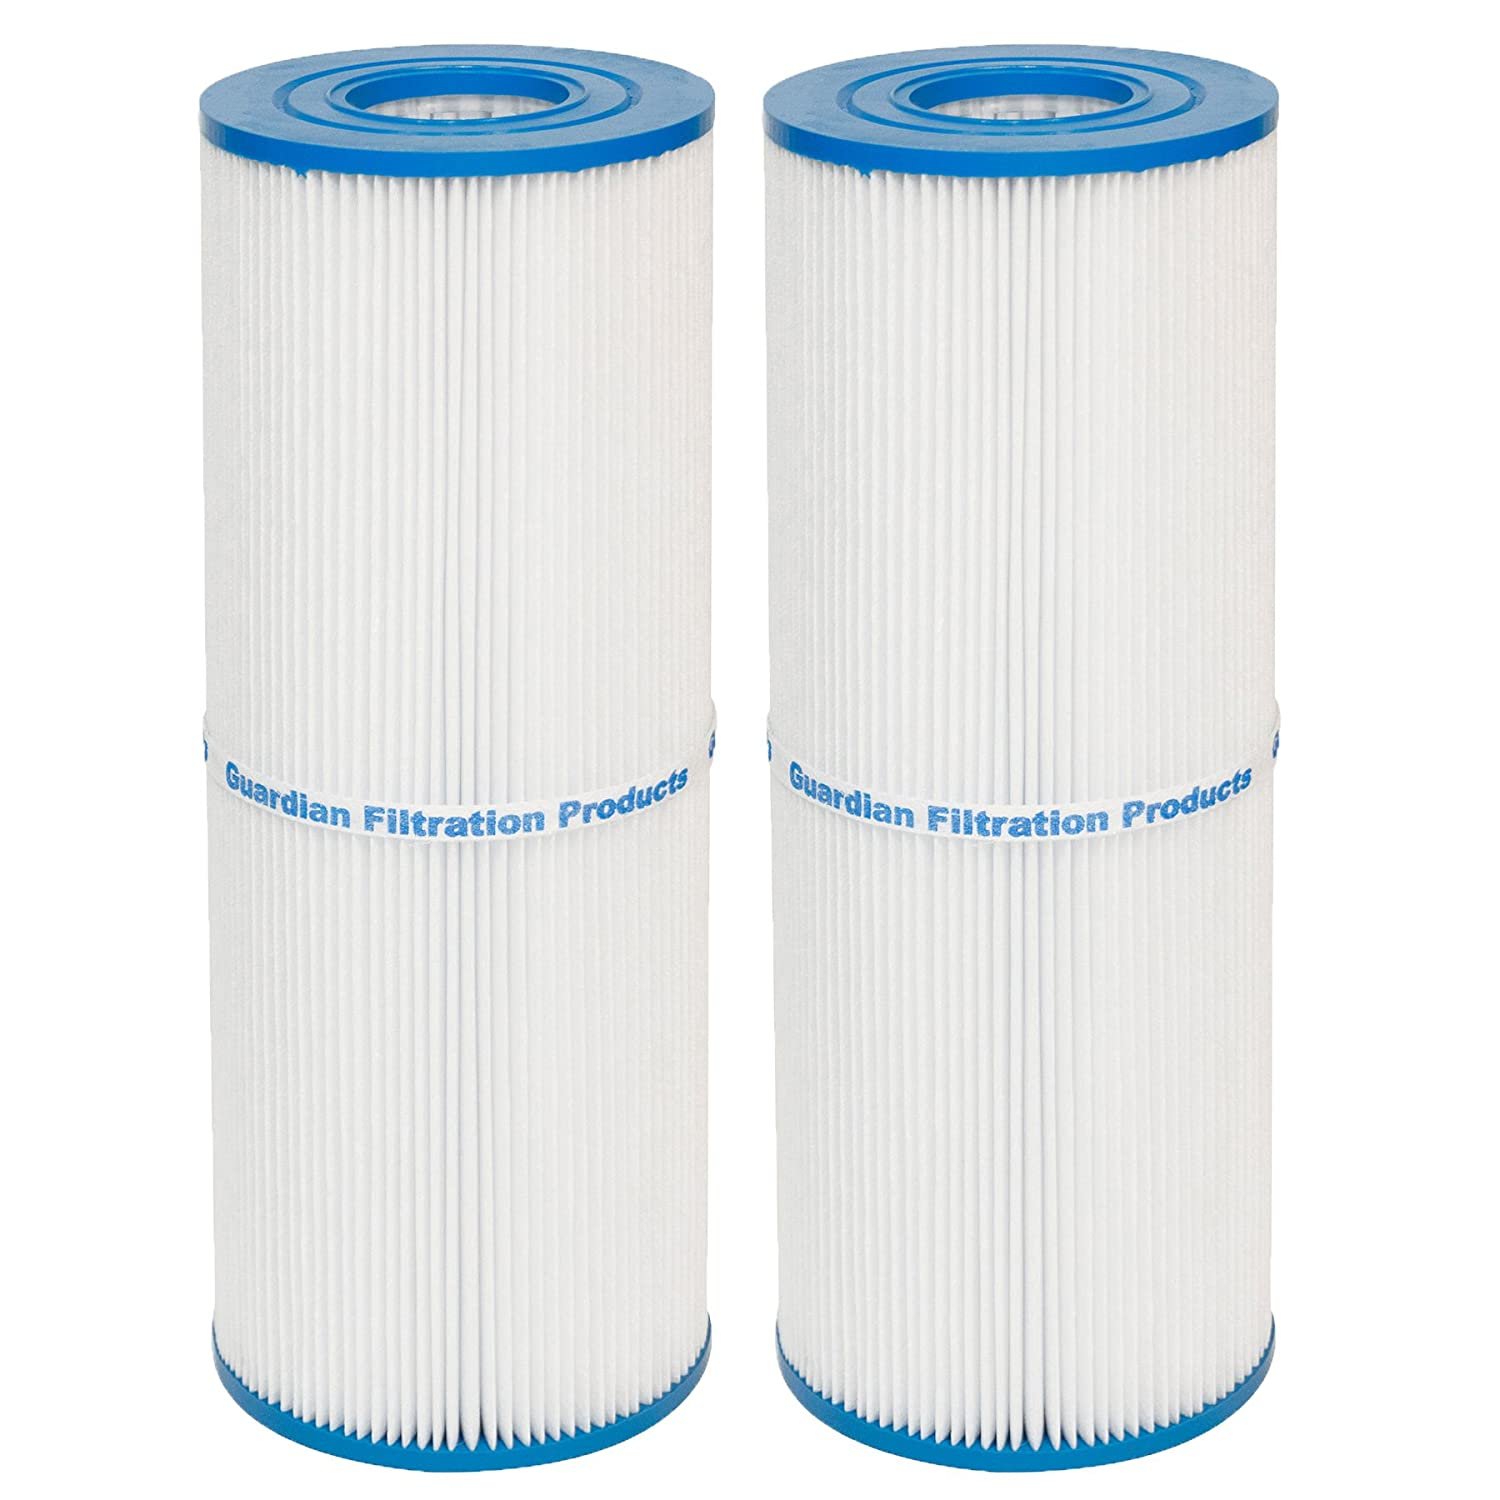 Guardian Filtration Products, Replacement Pool Spa Filter Unicel C-4326, Spa Filter FC2375, Pleatco PRB25, 2 Pack